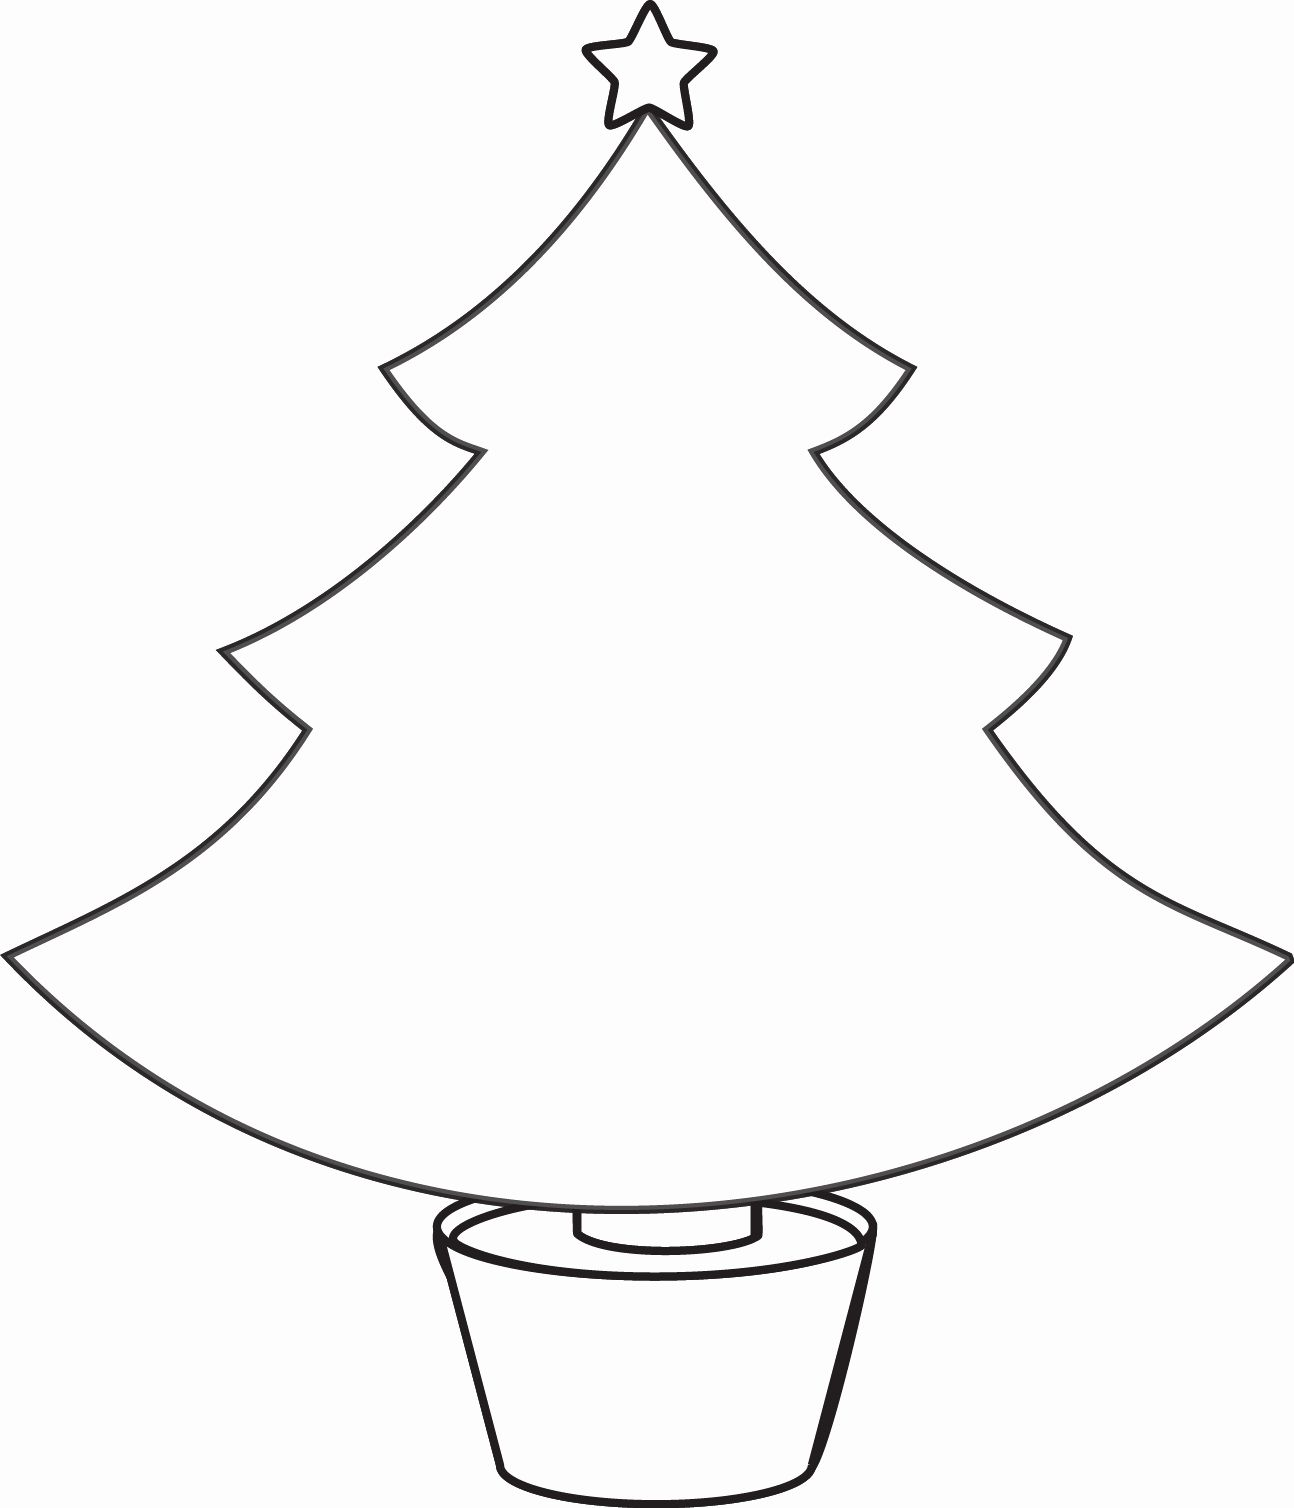 Coloring Book Evergreen Tree Coloring Pages Gallery Christmas Tree Template Christmas Tree Printable Christmas Tree Clipart